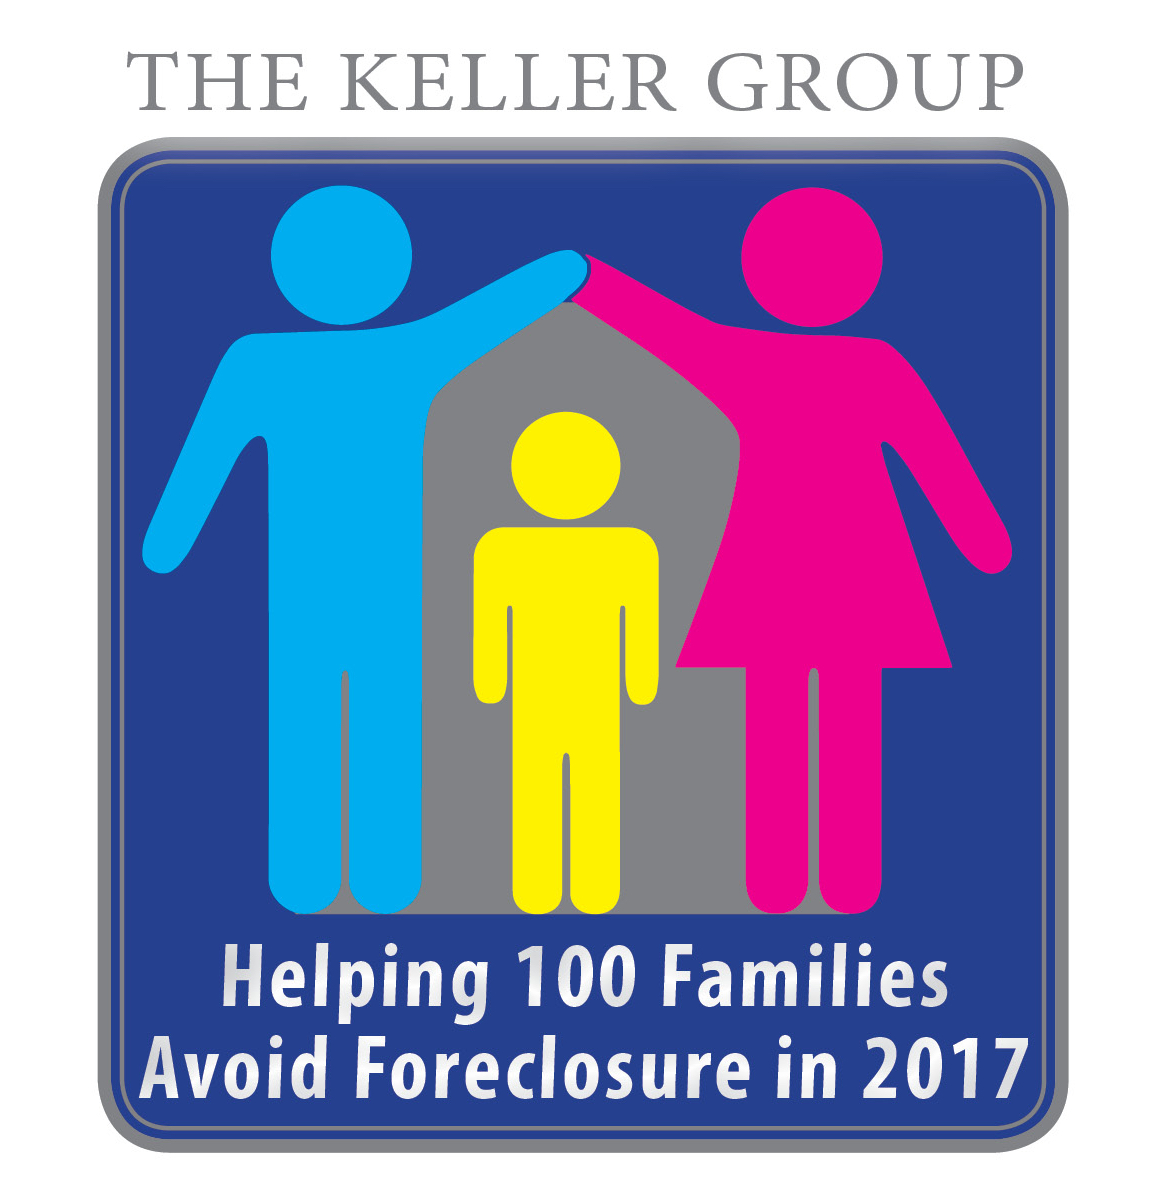 Thekellergroup helping families to avoid foreclosure